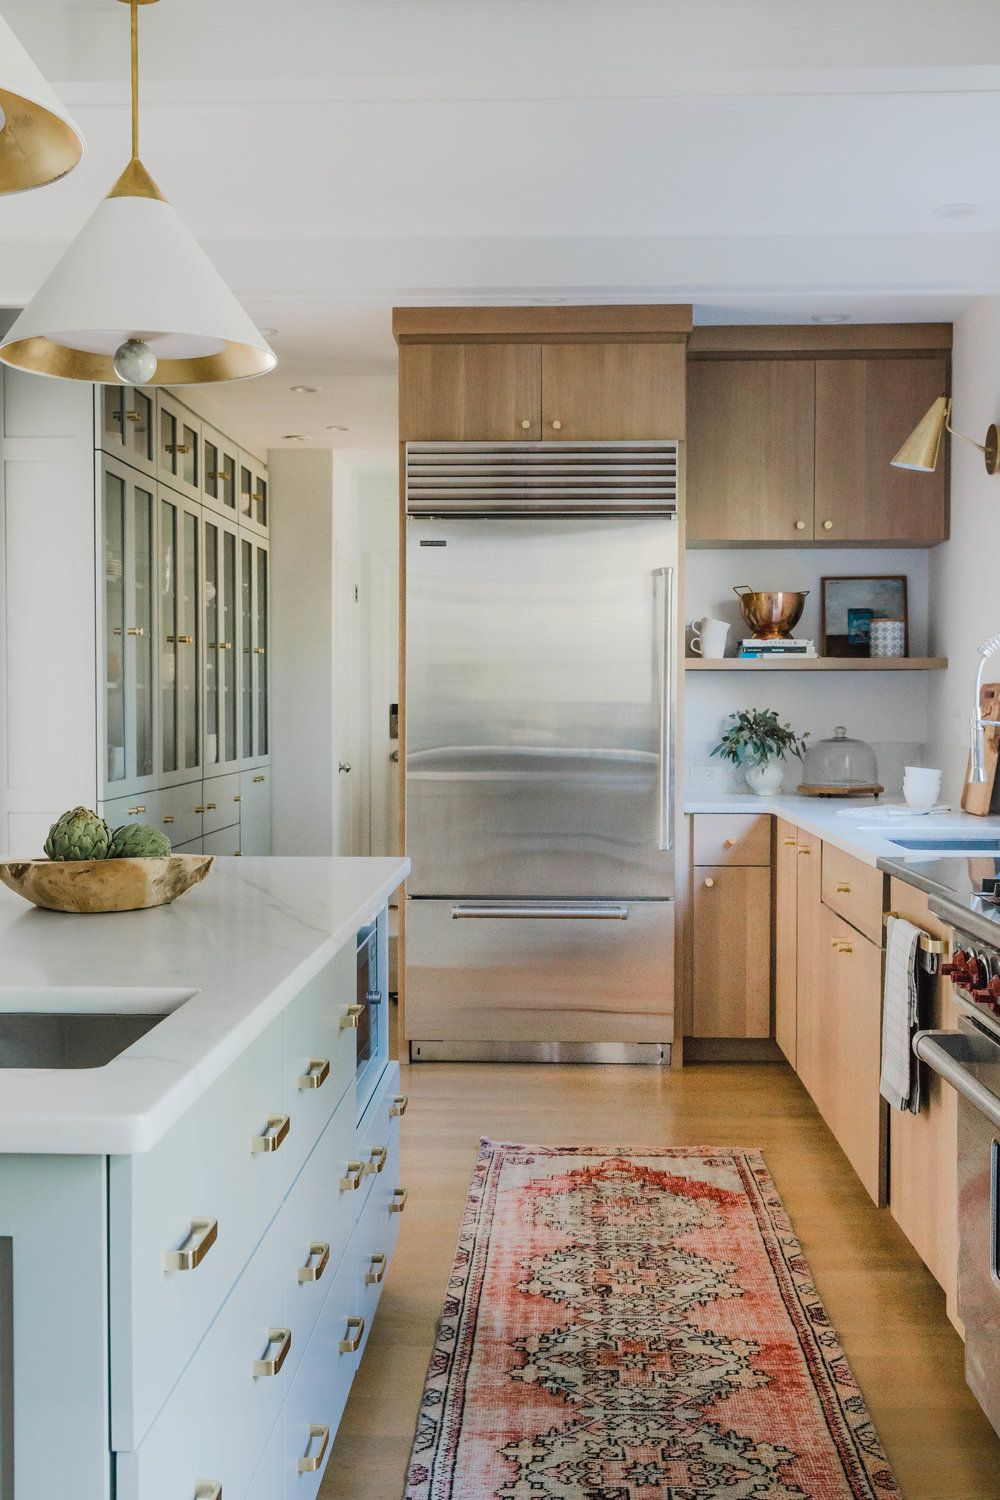 11 Kitchen Cabinets With Paint Jobs We Love Timeless Kitchen Top Kitchen Trends Kitchen Trends